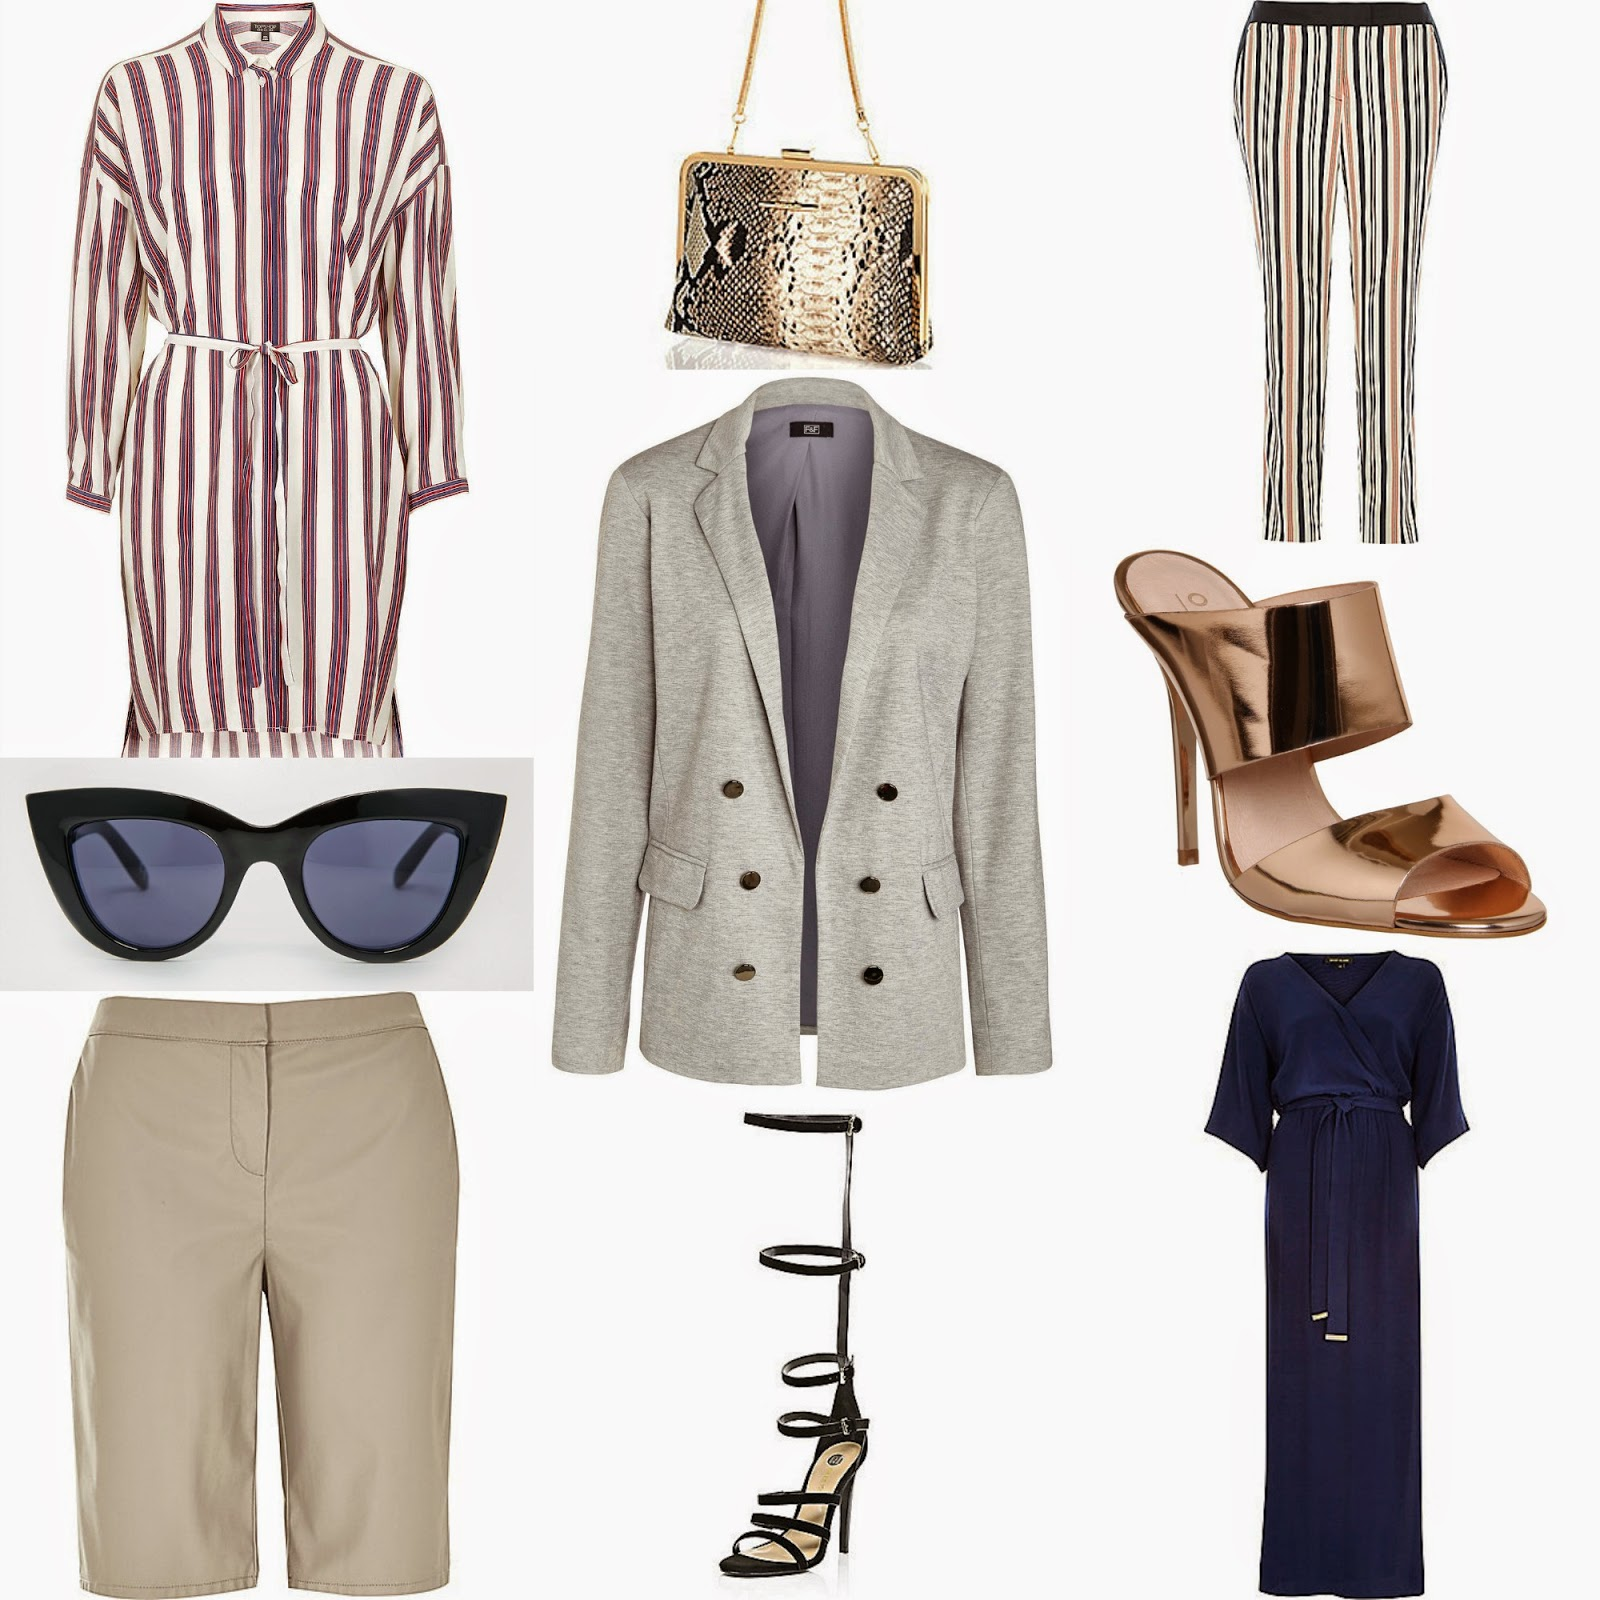 Friday wishlist, new in, ss15, topshop striped shirt dress, grey blazer, f&f, aw16, leather look city shorts, river island, gladiator sandals, navy, utility, rose gold mules from office, kimono maxi dress from river island